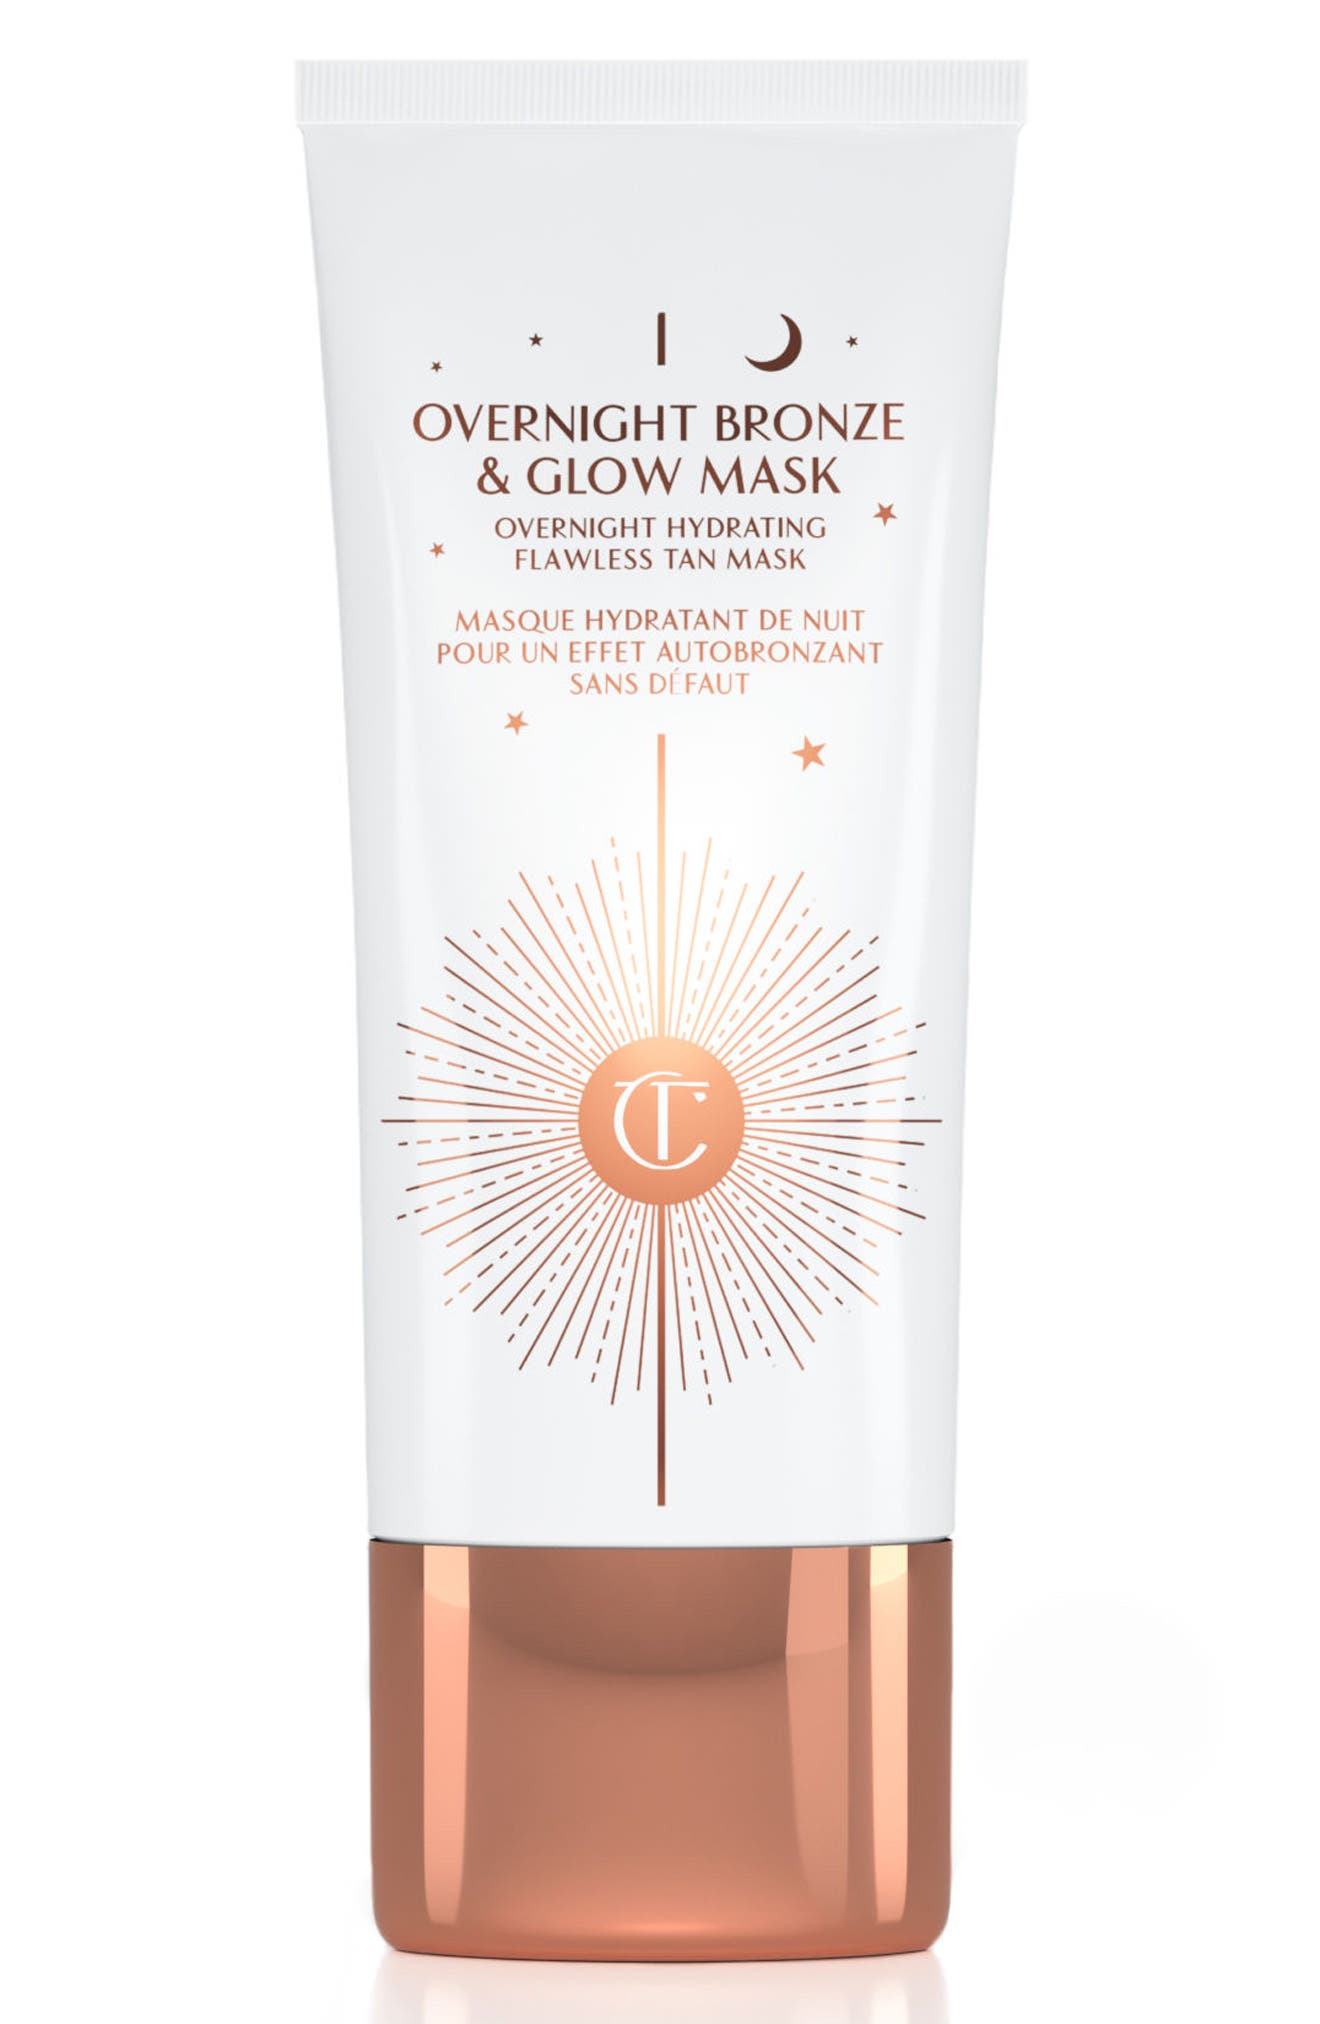 CHARLOTTE TILBURY, Overnight Bronze & Glow Mask, Main thumbnail 1, color, NO COLOR